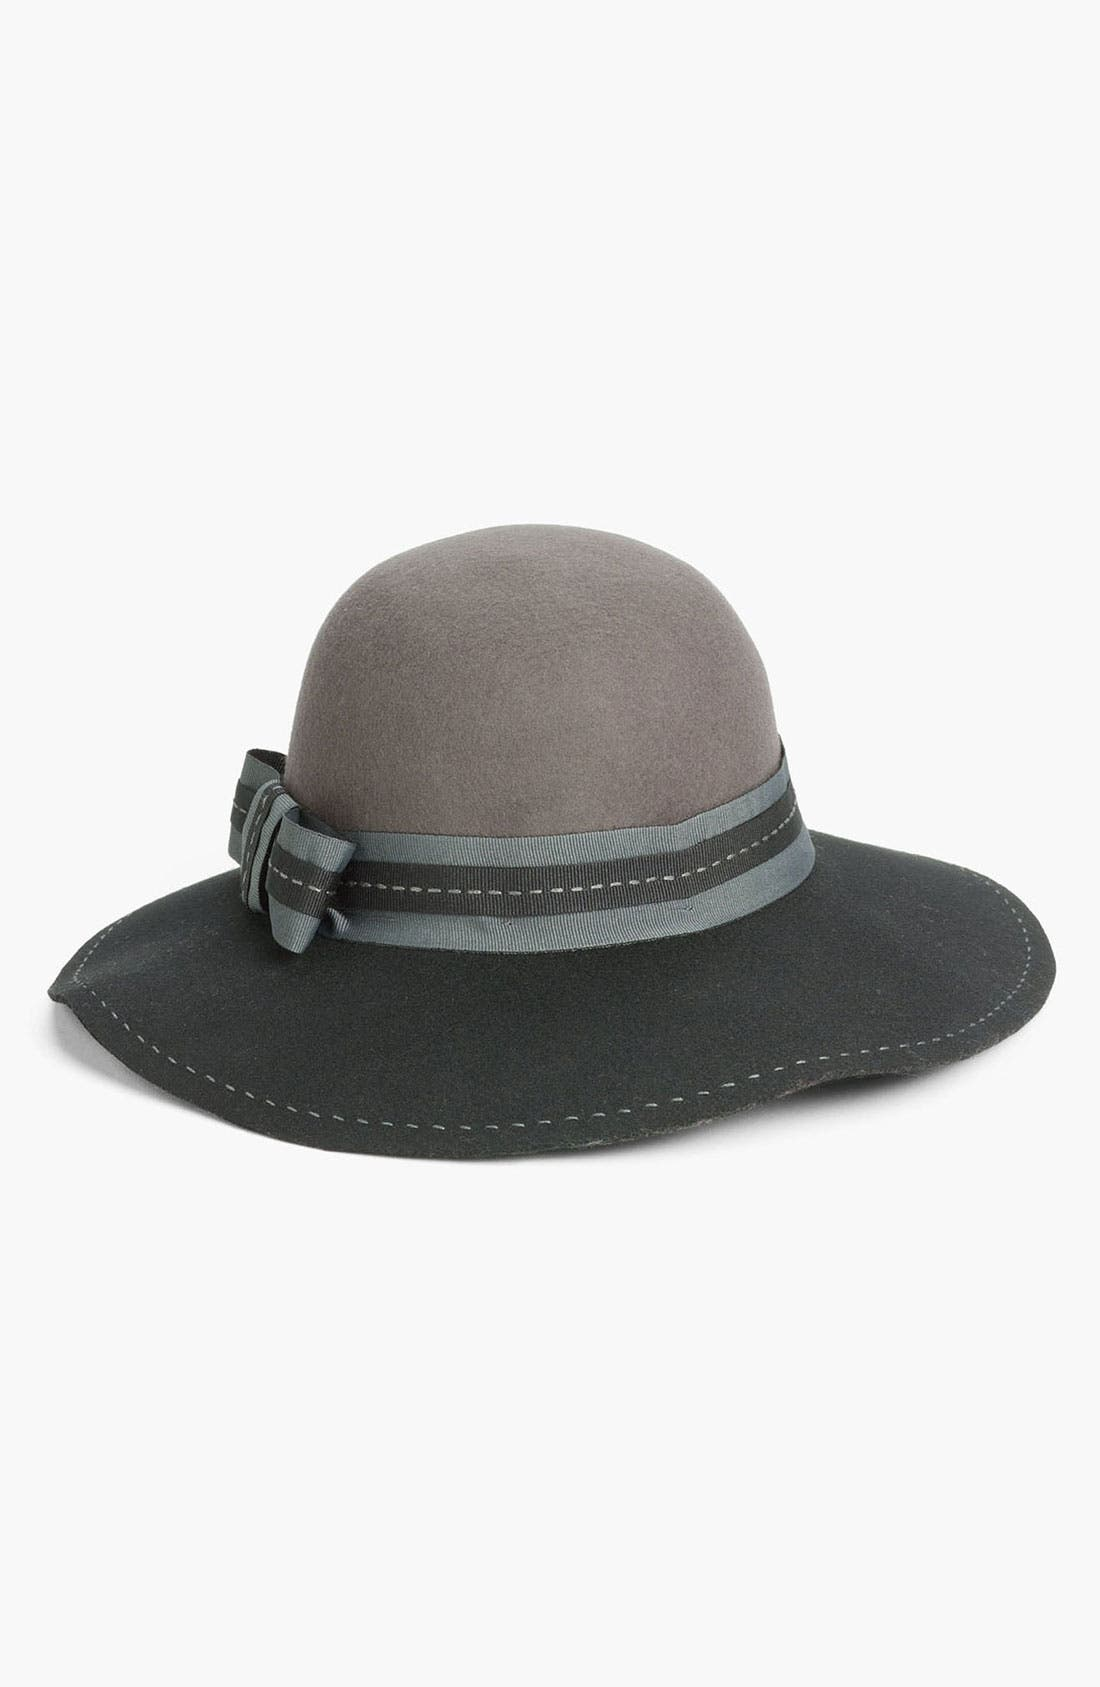 Main Image - Nordstrom Two Tone Floppy Wool Hat